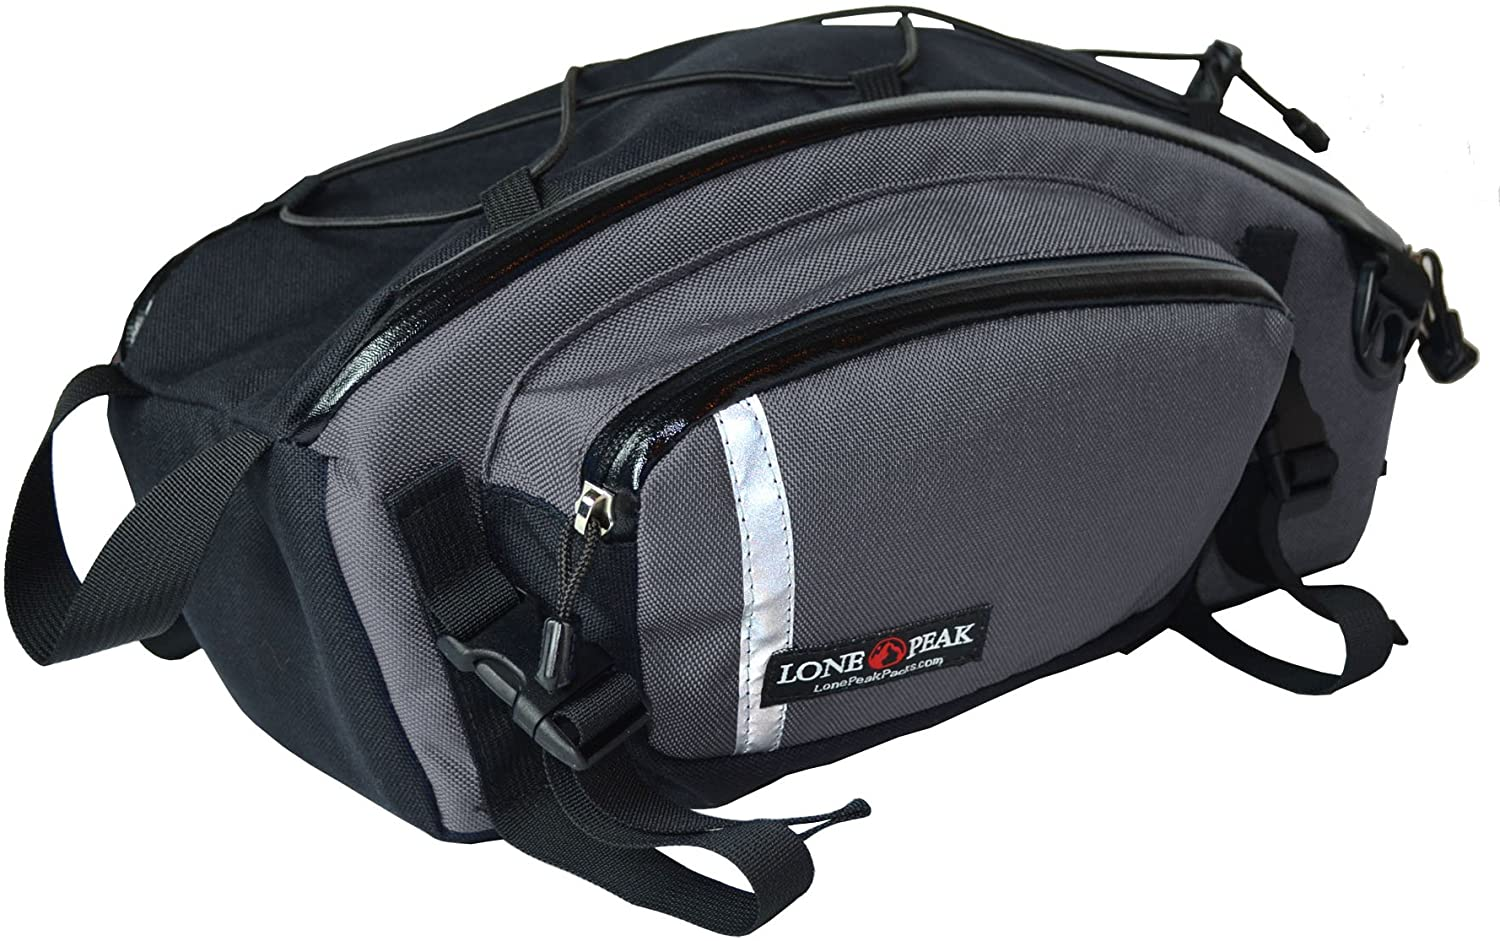 Lone Peak Swayback Bicycle Rear Rack Pack Bag